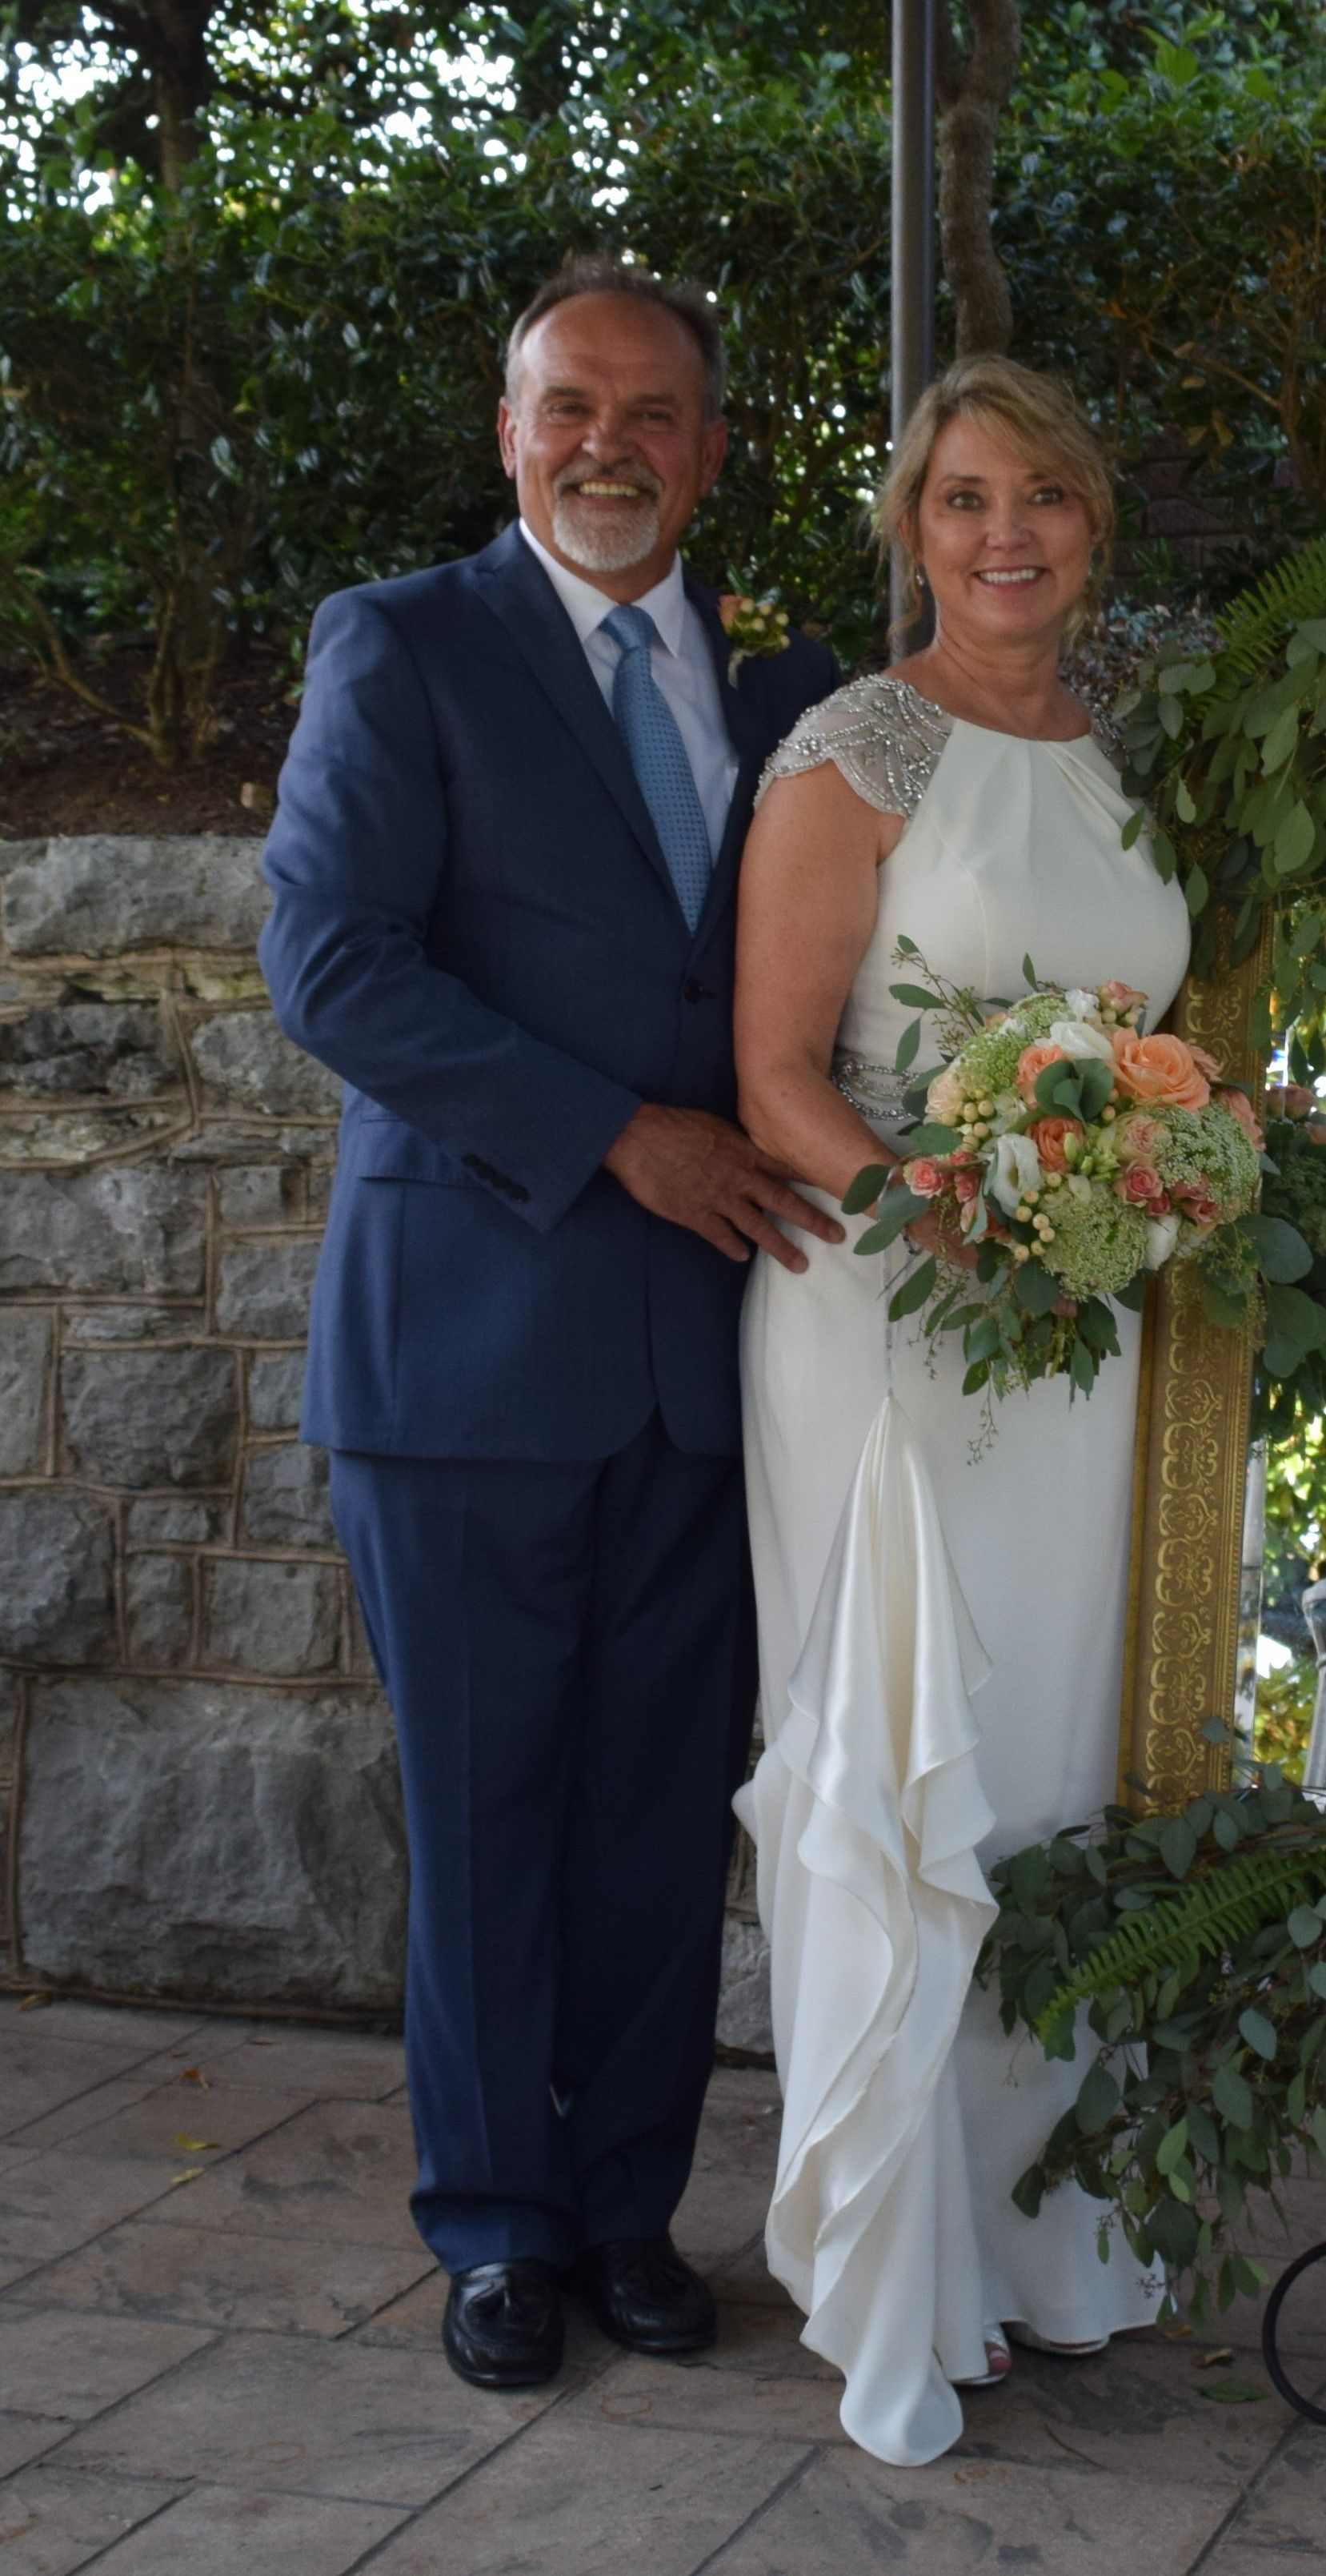 Elegant And Classy Wedding Dress For The Bride Over 50 Or